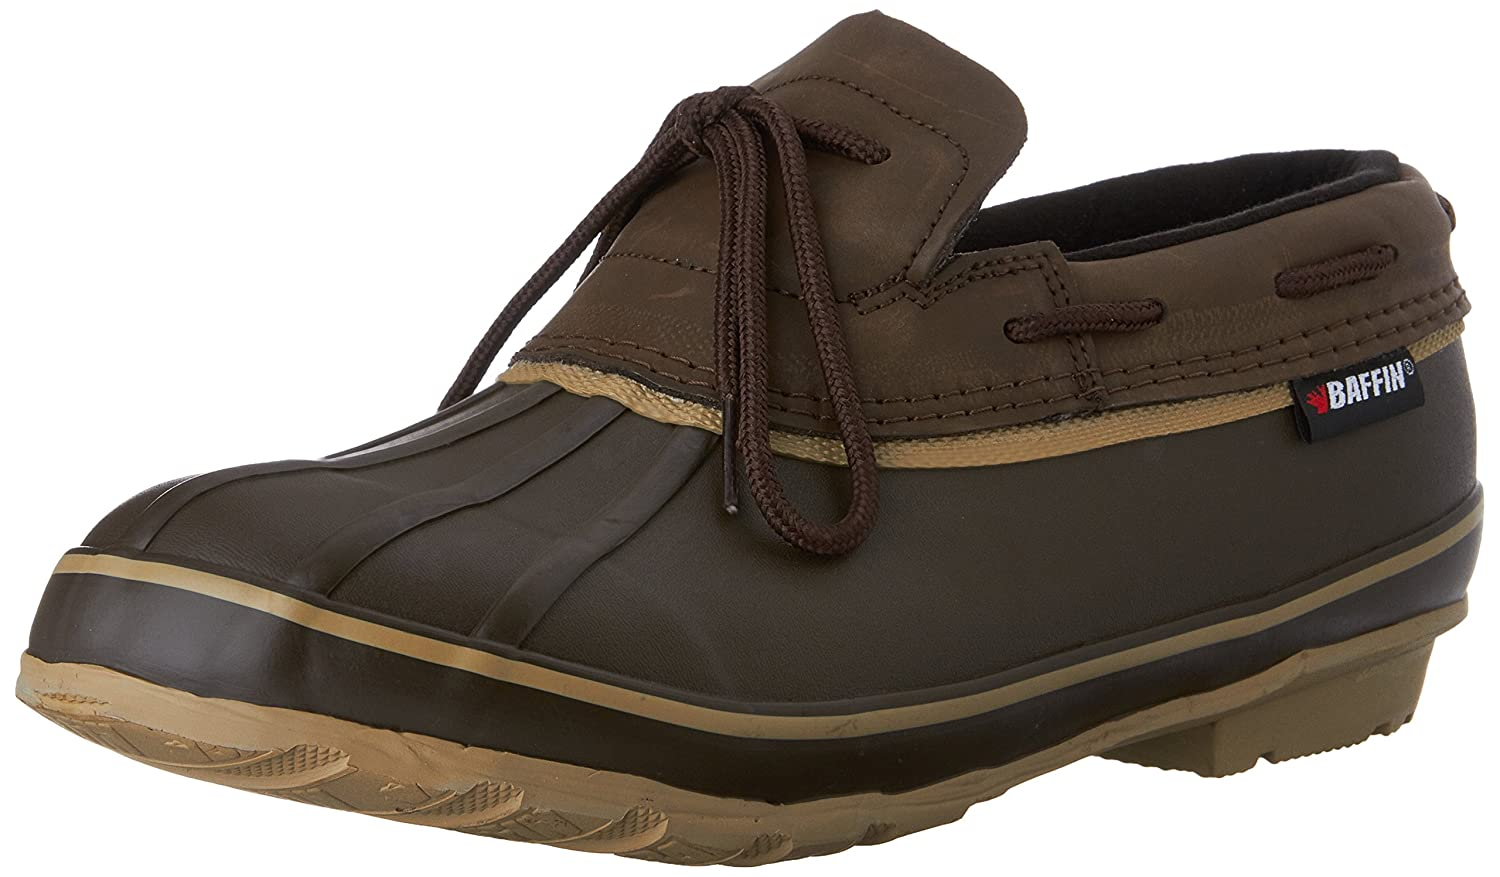 Baffin Men's Coyote Rubber Shoe